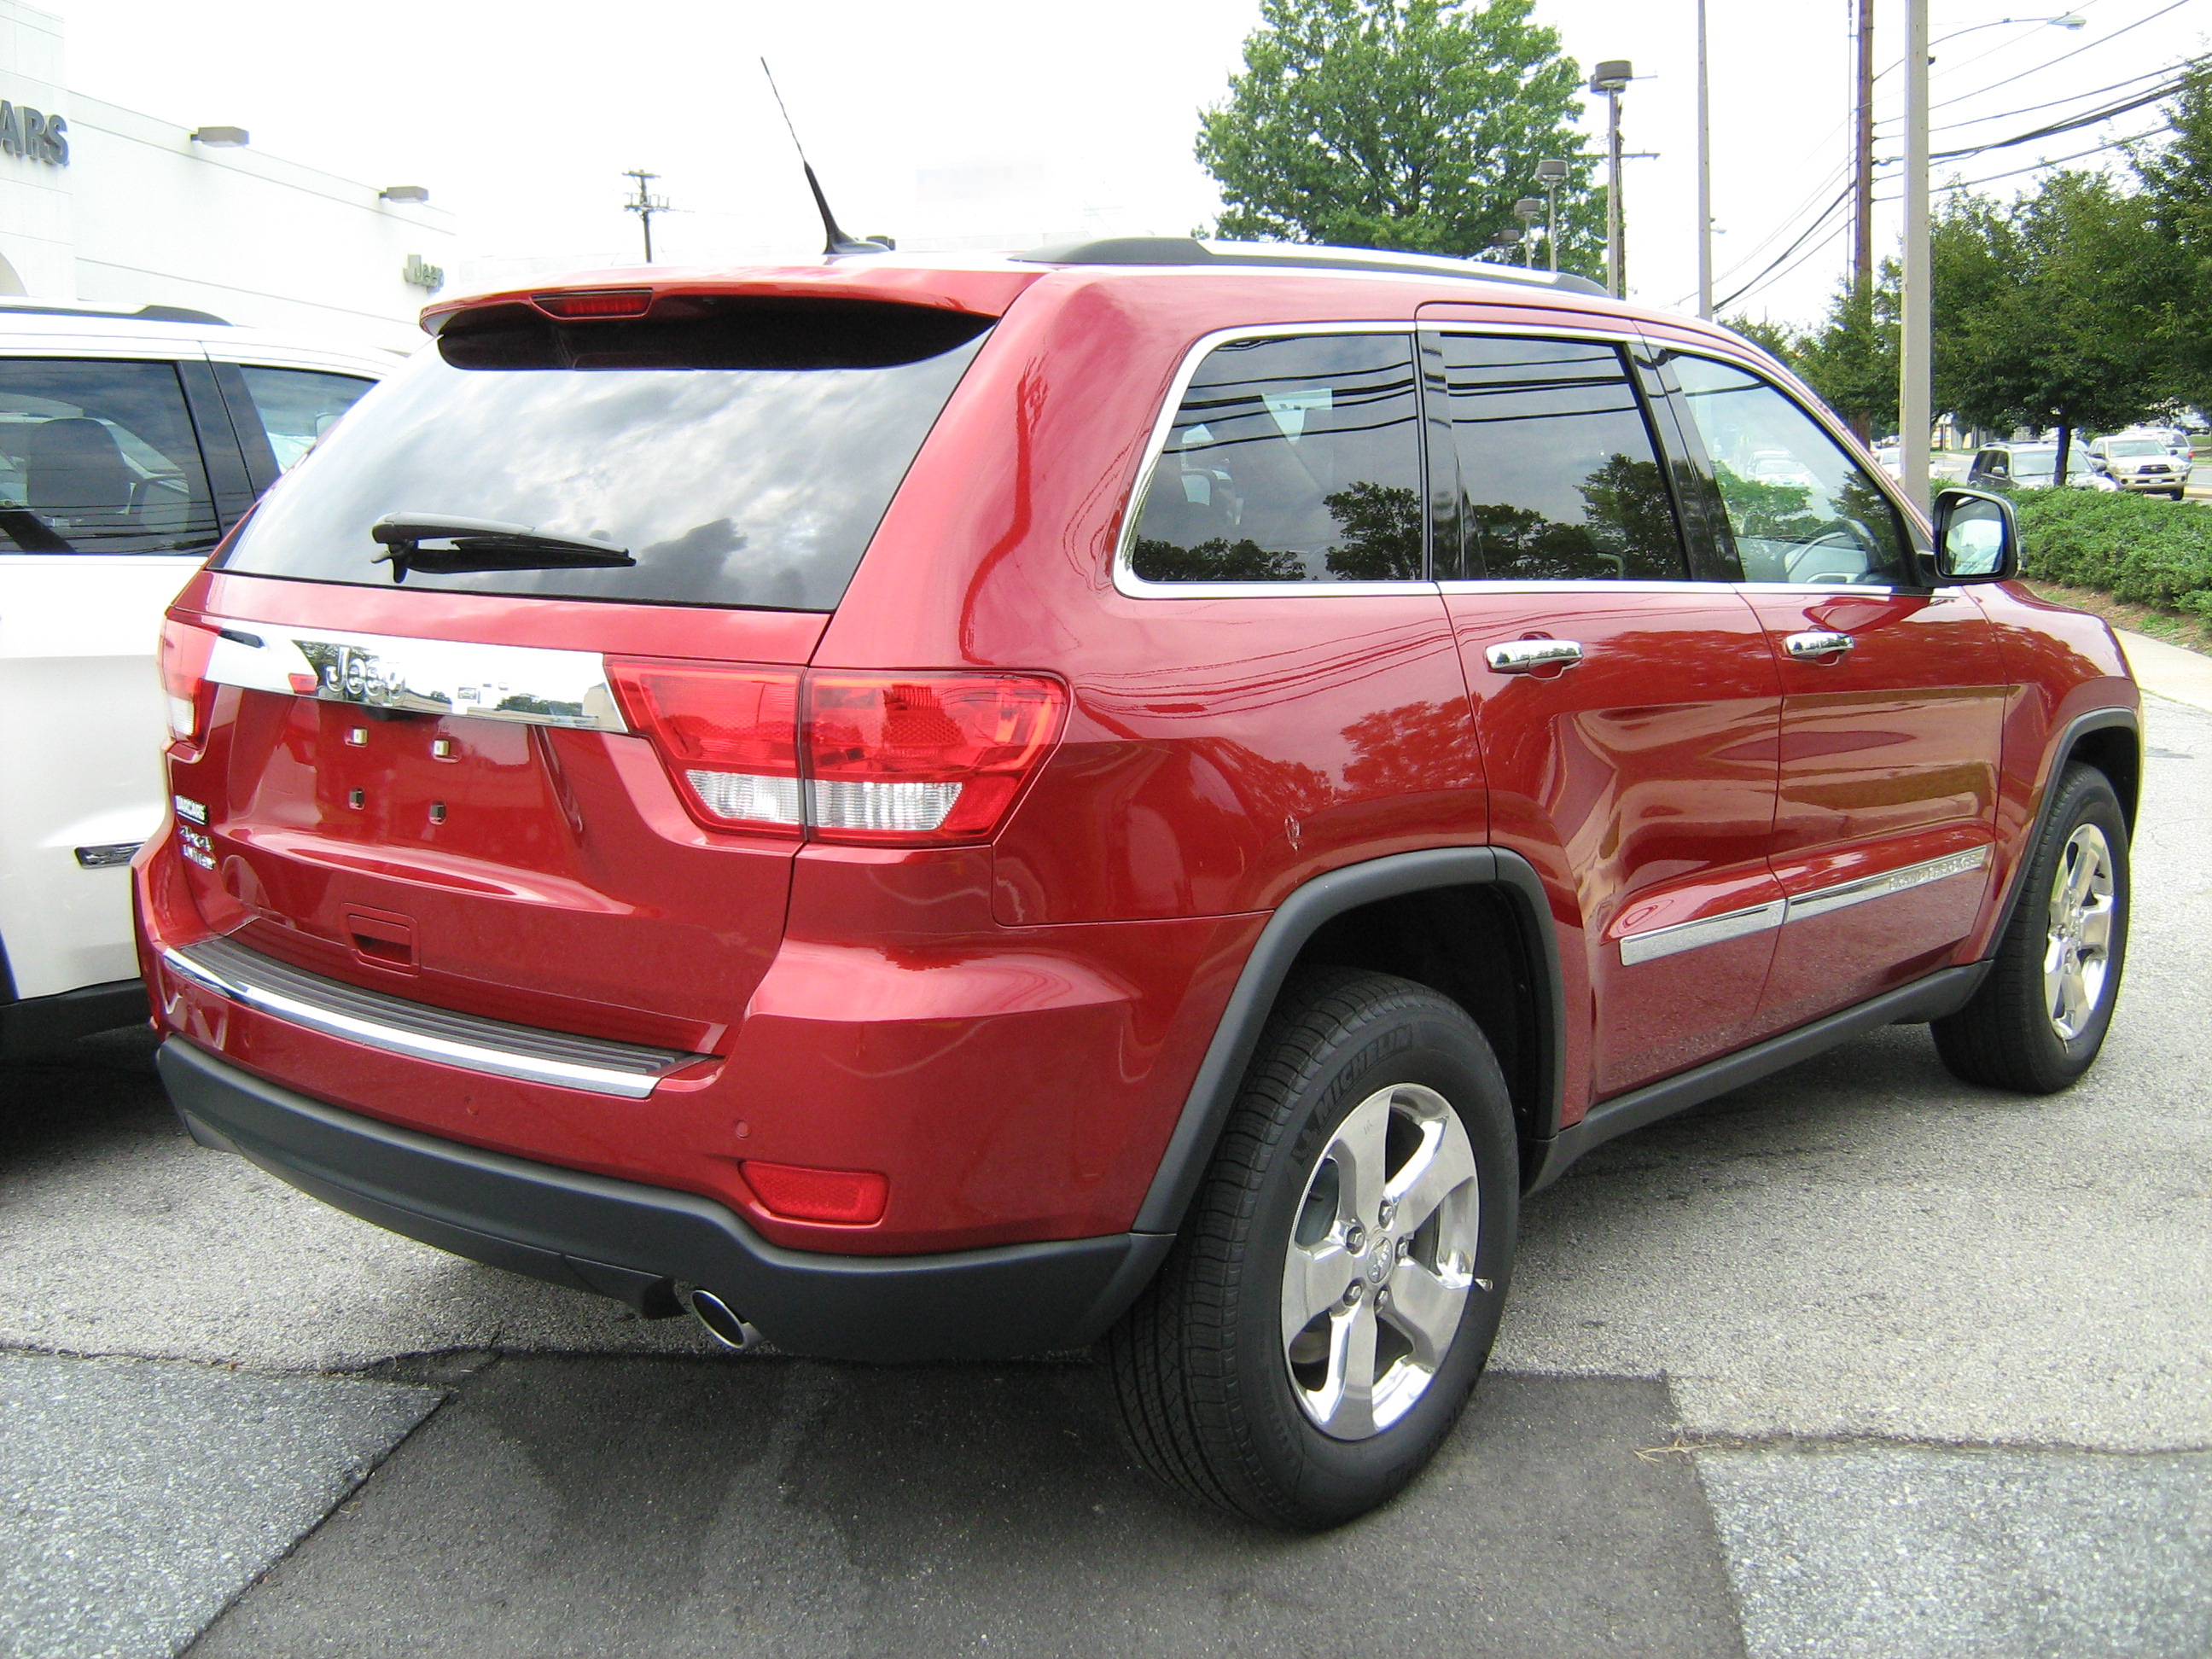 File:2011 Jeep Grand Cherokee Limited Red Rear Md